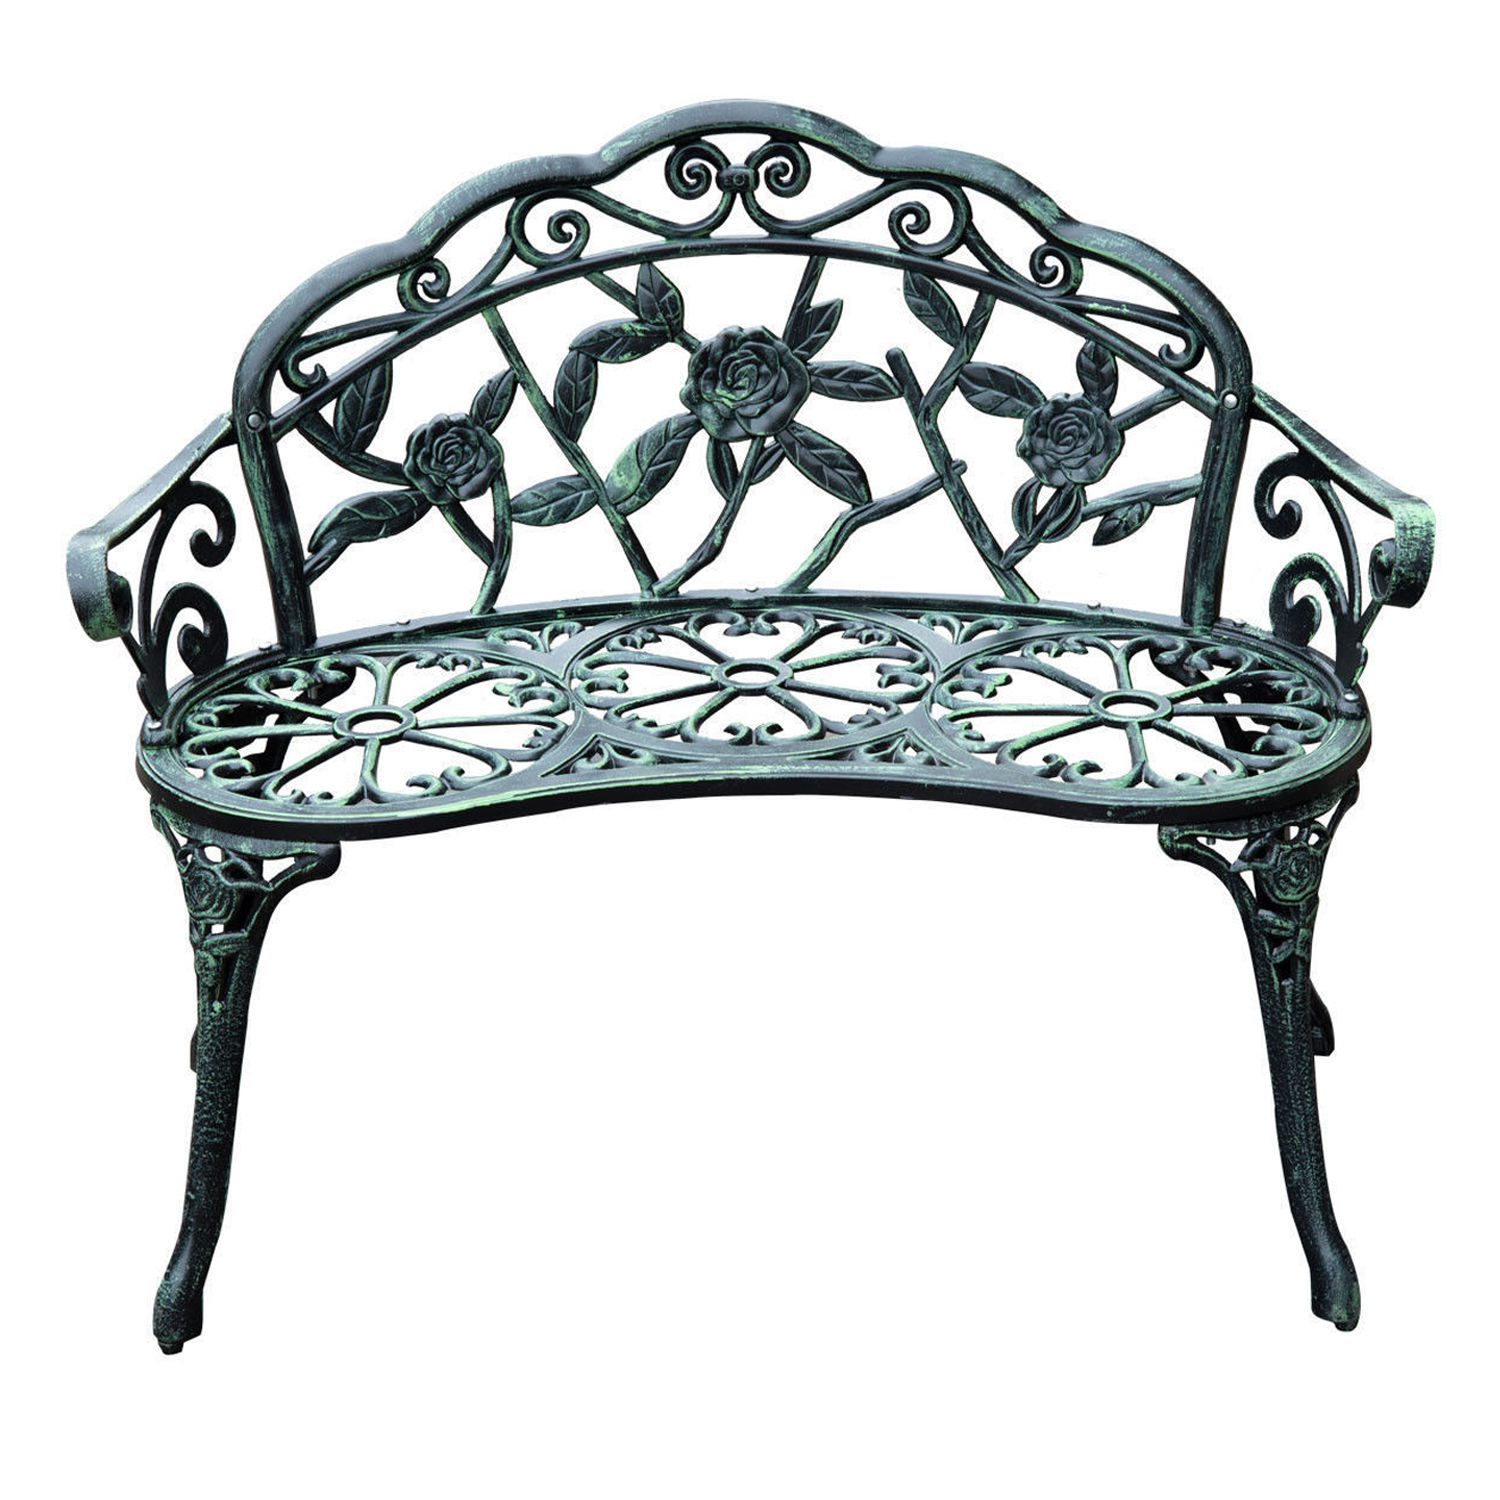 Fine Details About 40 Antique Style Patio Porch Garden Bench Cast Aluminum Outdoor Chair Rose Ncnpc Chair Design For Home Ncnpcorg